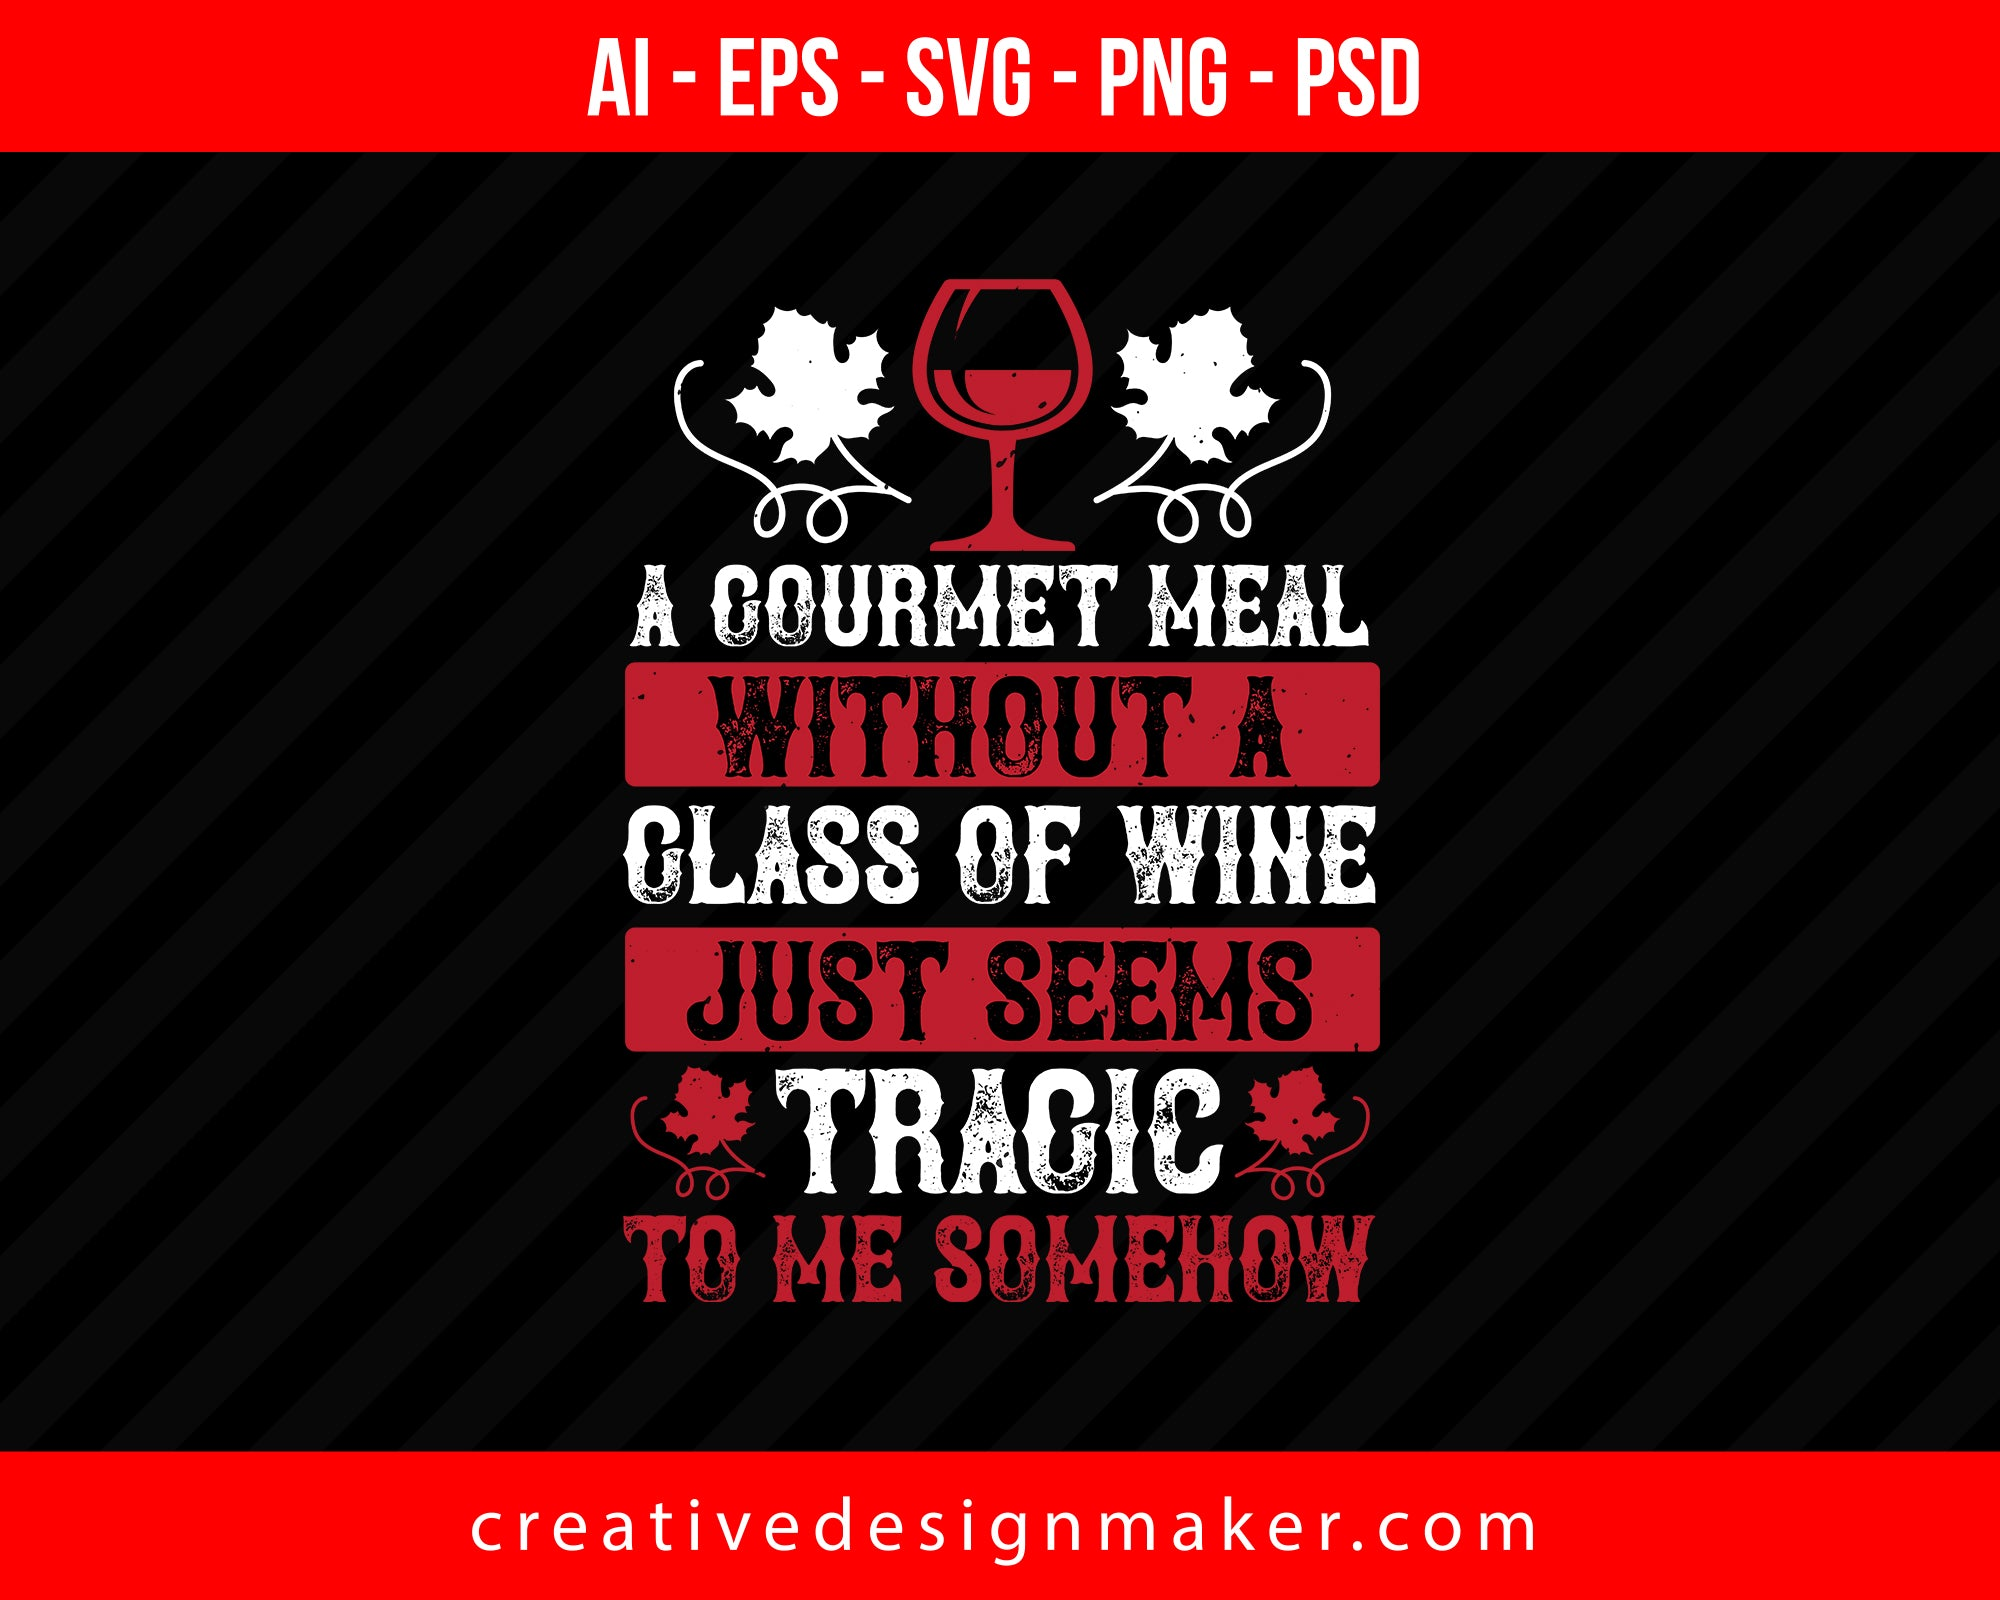 A Gourmet Meal Without A Glass Of Wine Just Seems Print Ready Editable T-Shirt SVG Design!